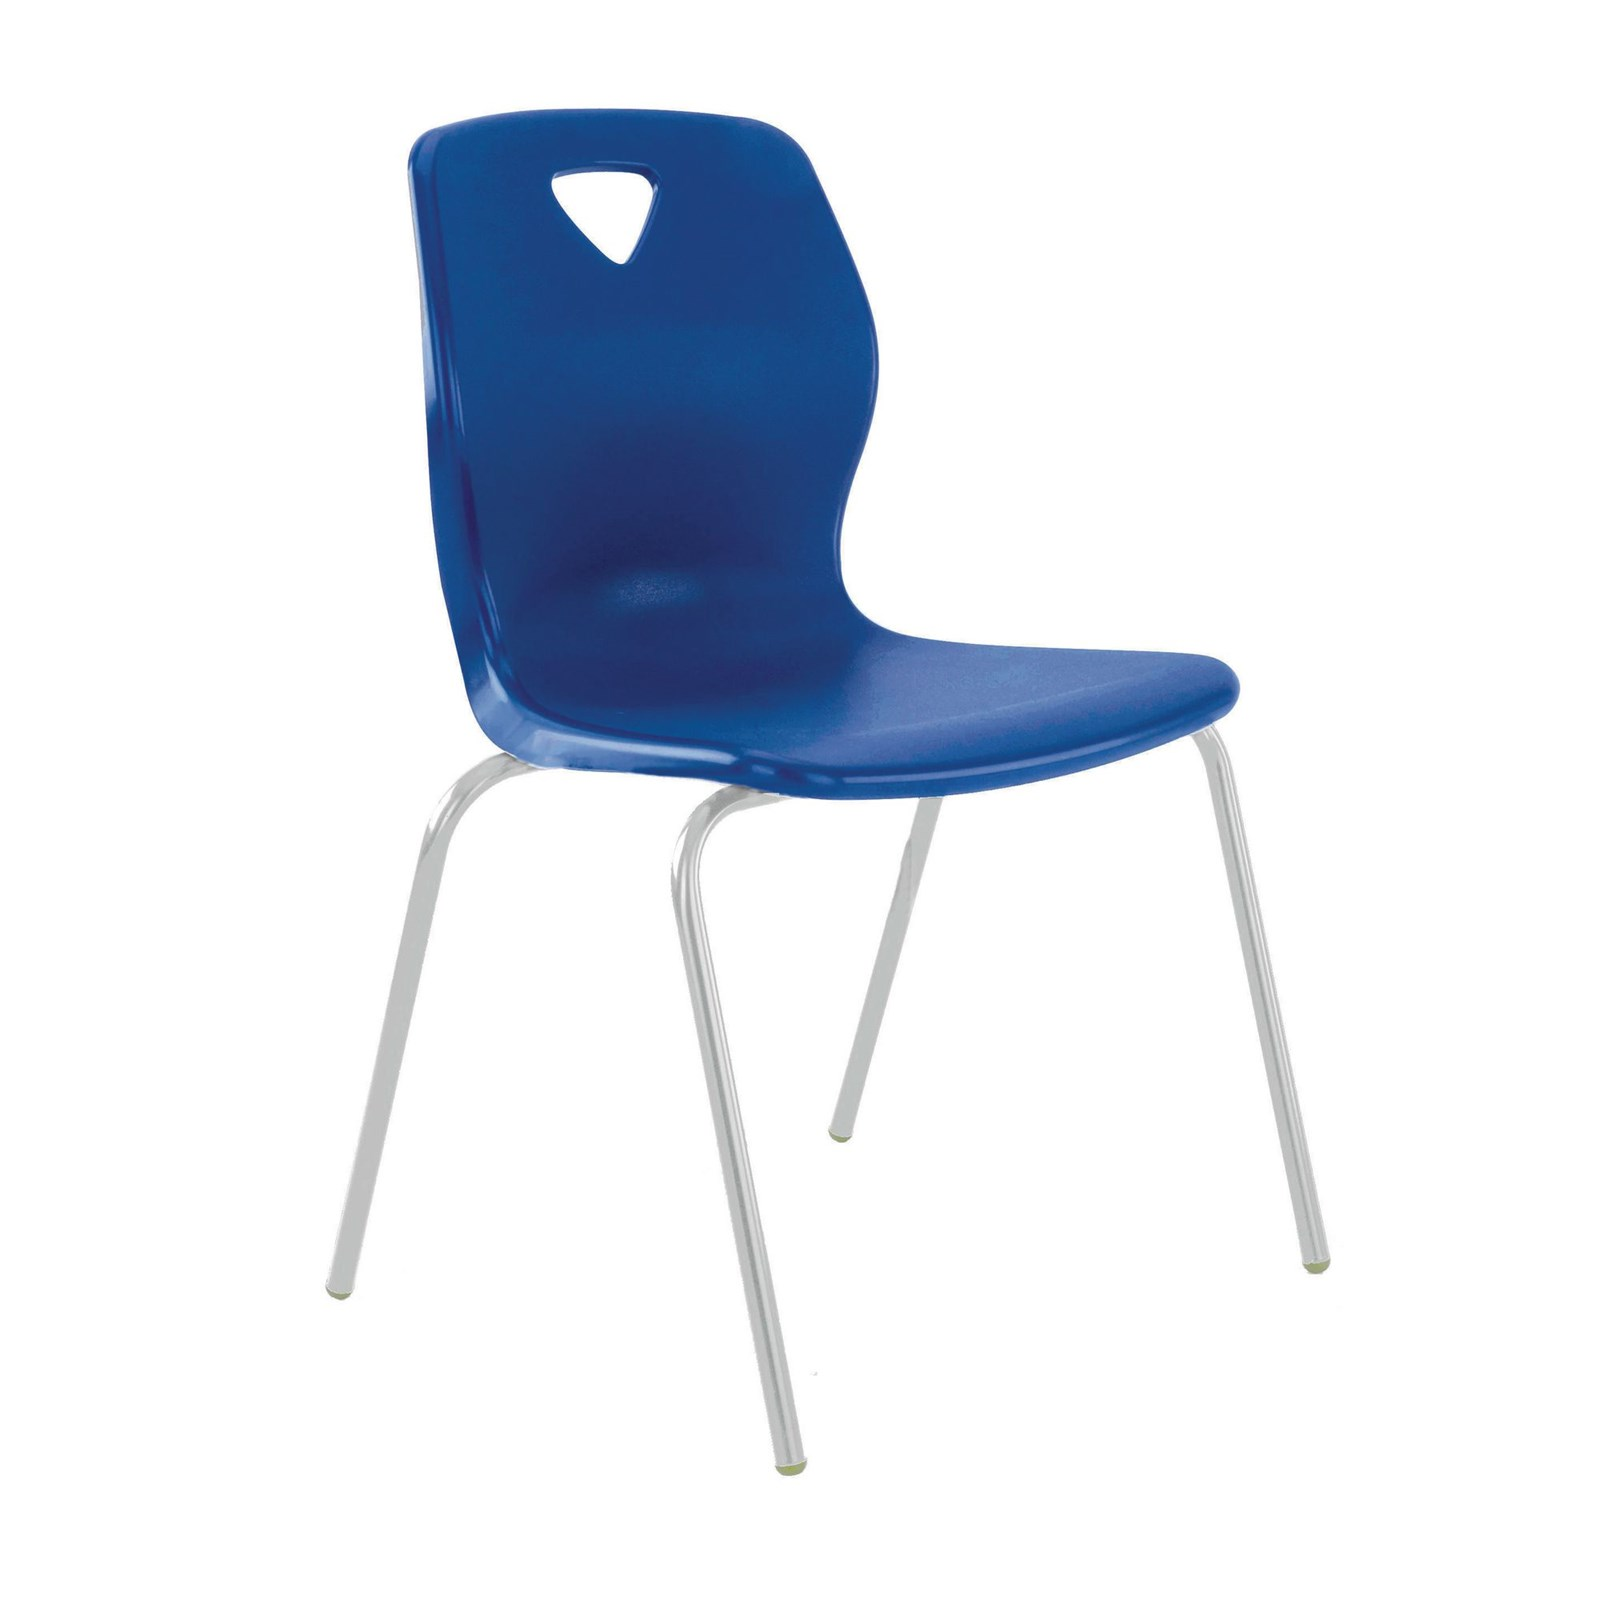 P7 Chair 380mm Gry Frm Lime